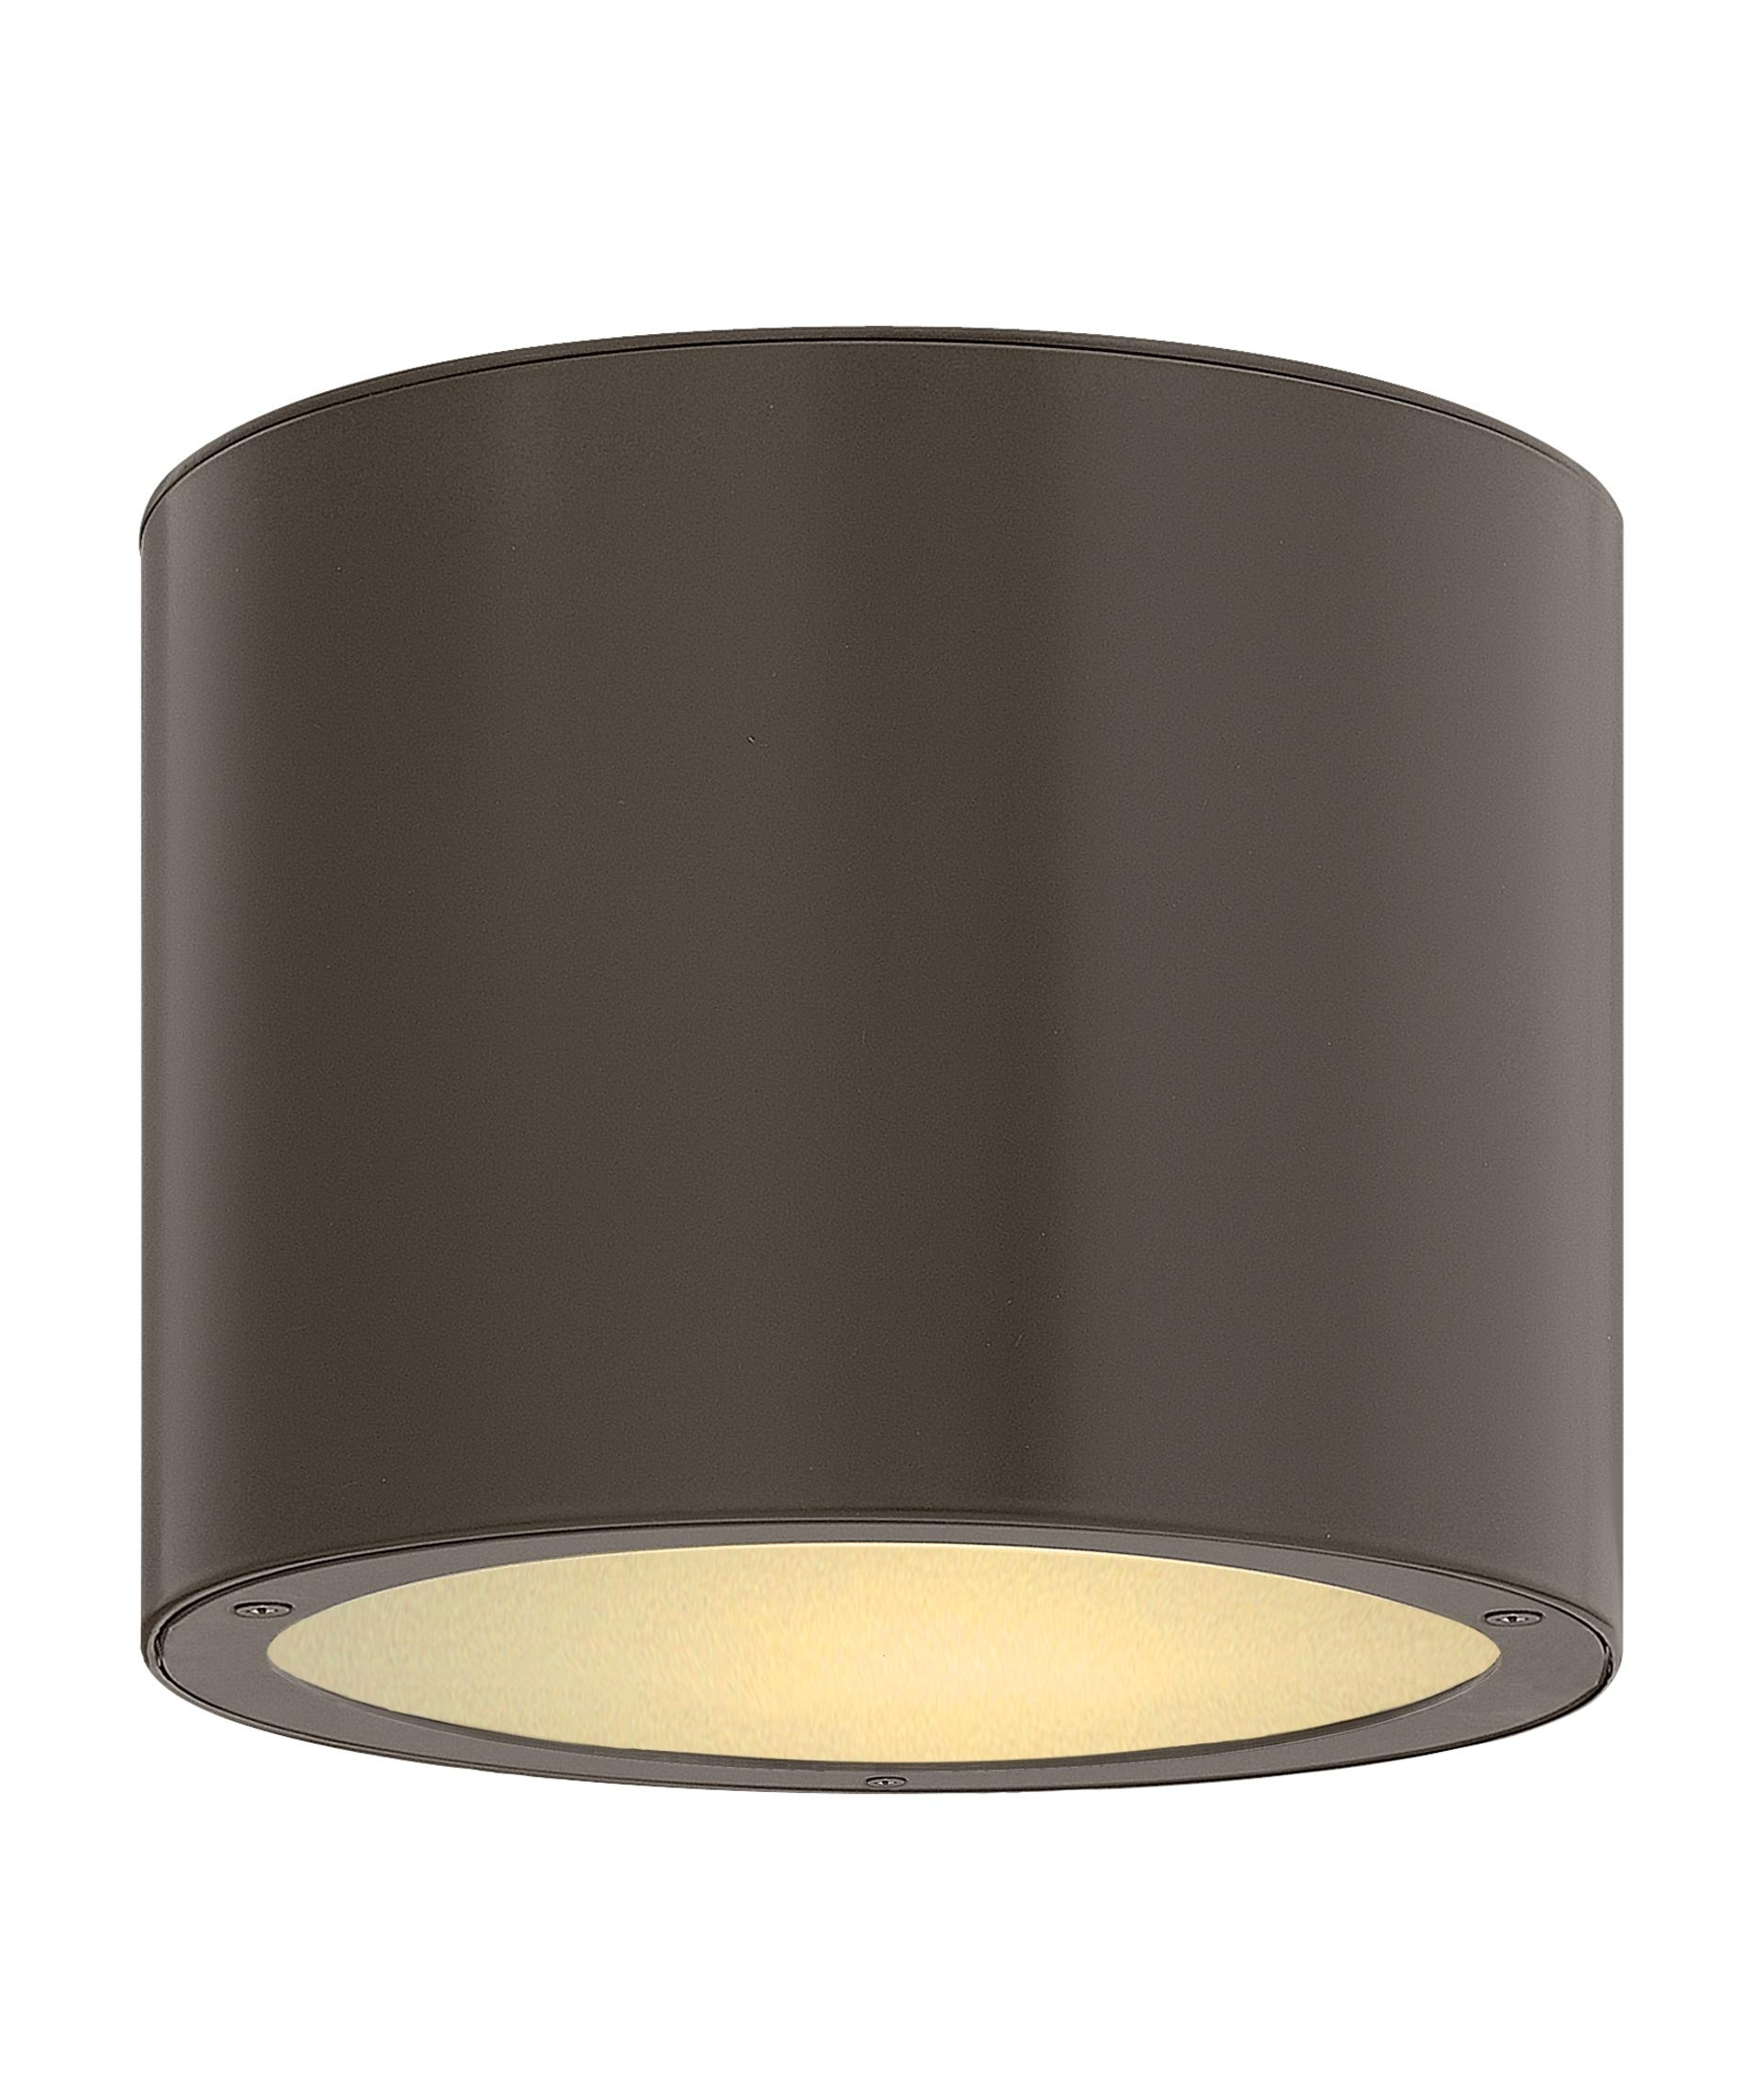 Hinkley Lighting 1663 Luna 8 Inch Wide 1 Light Outdoor Flush Mount Inside Favorite Outdoor Ceiling Lighting Fixtures (View 11 of 20)